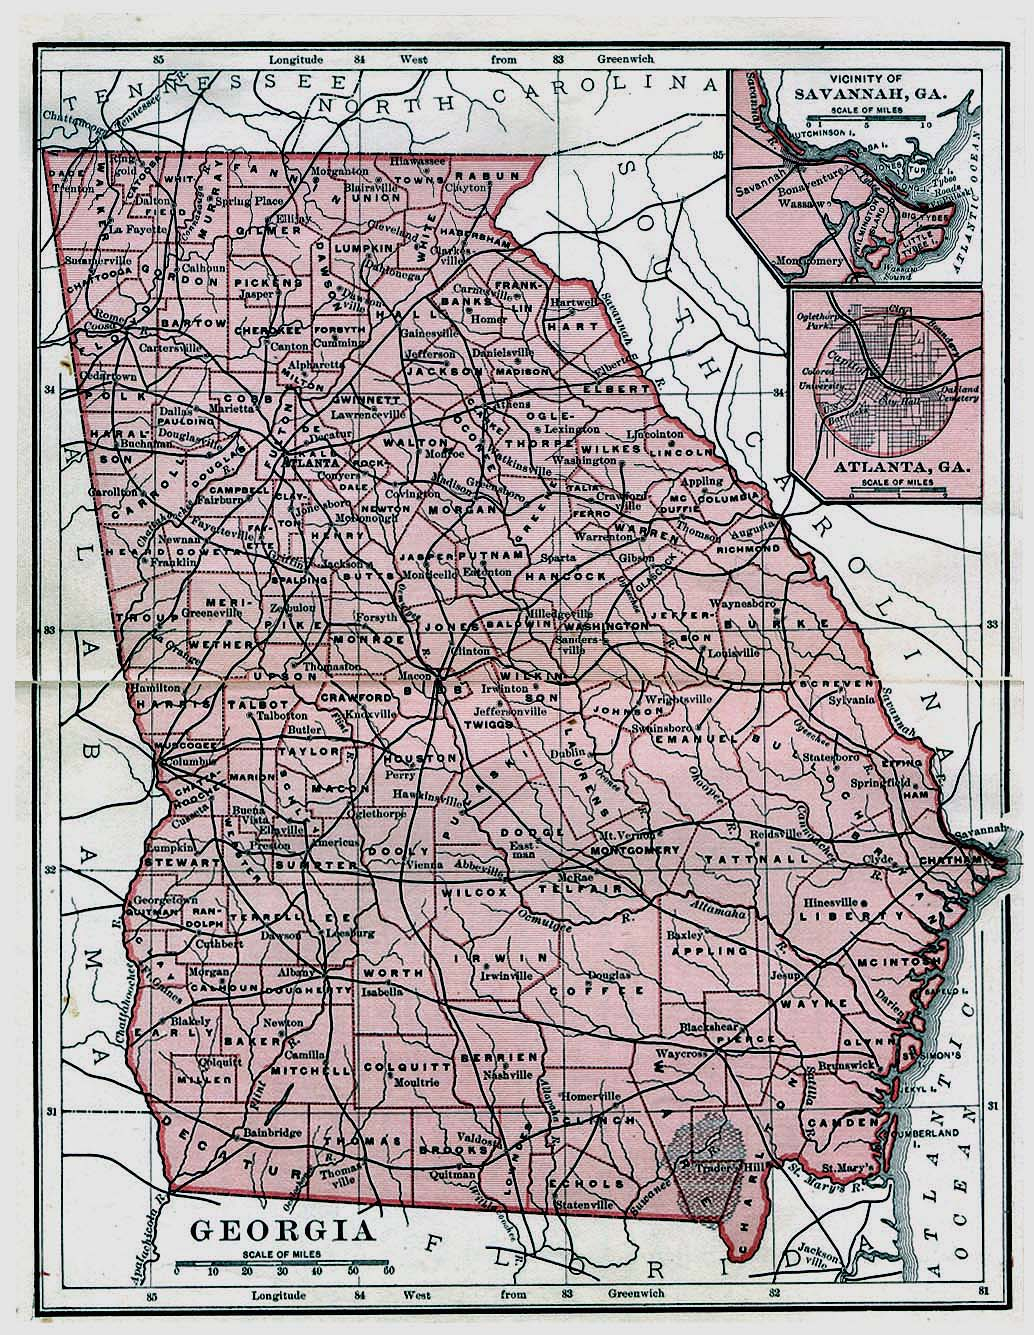 Georgia Maps PerryCastañeda Map Collection UT Library Online - Maps of georgia usa